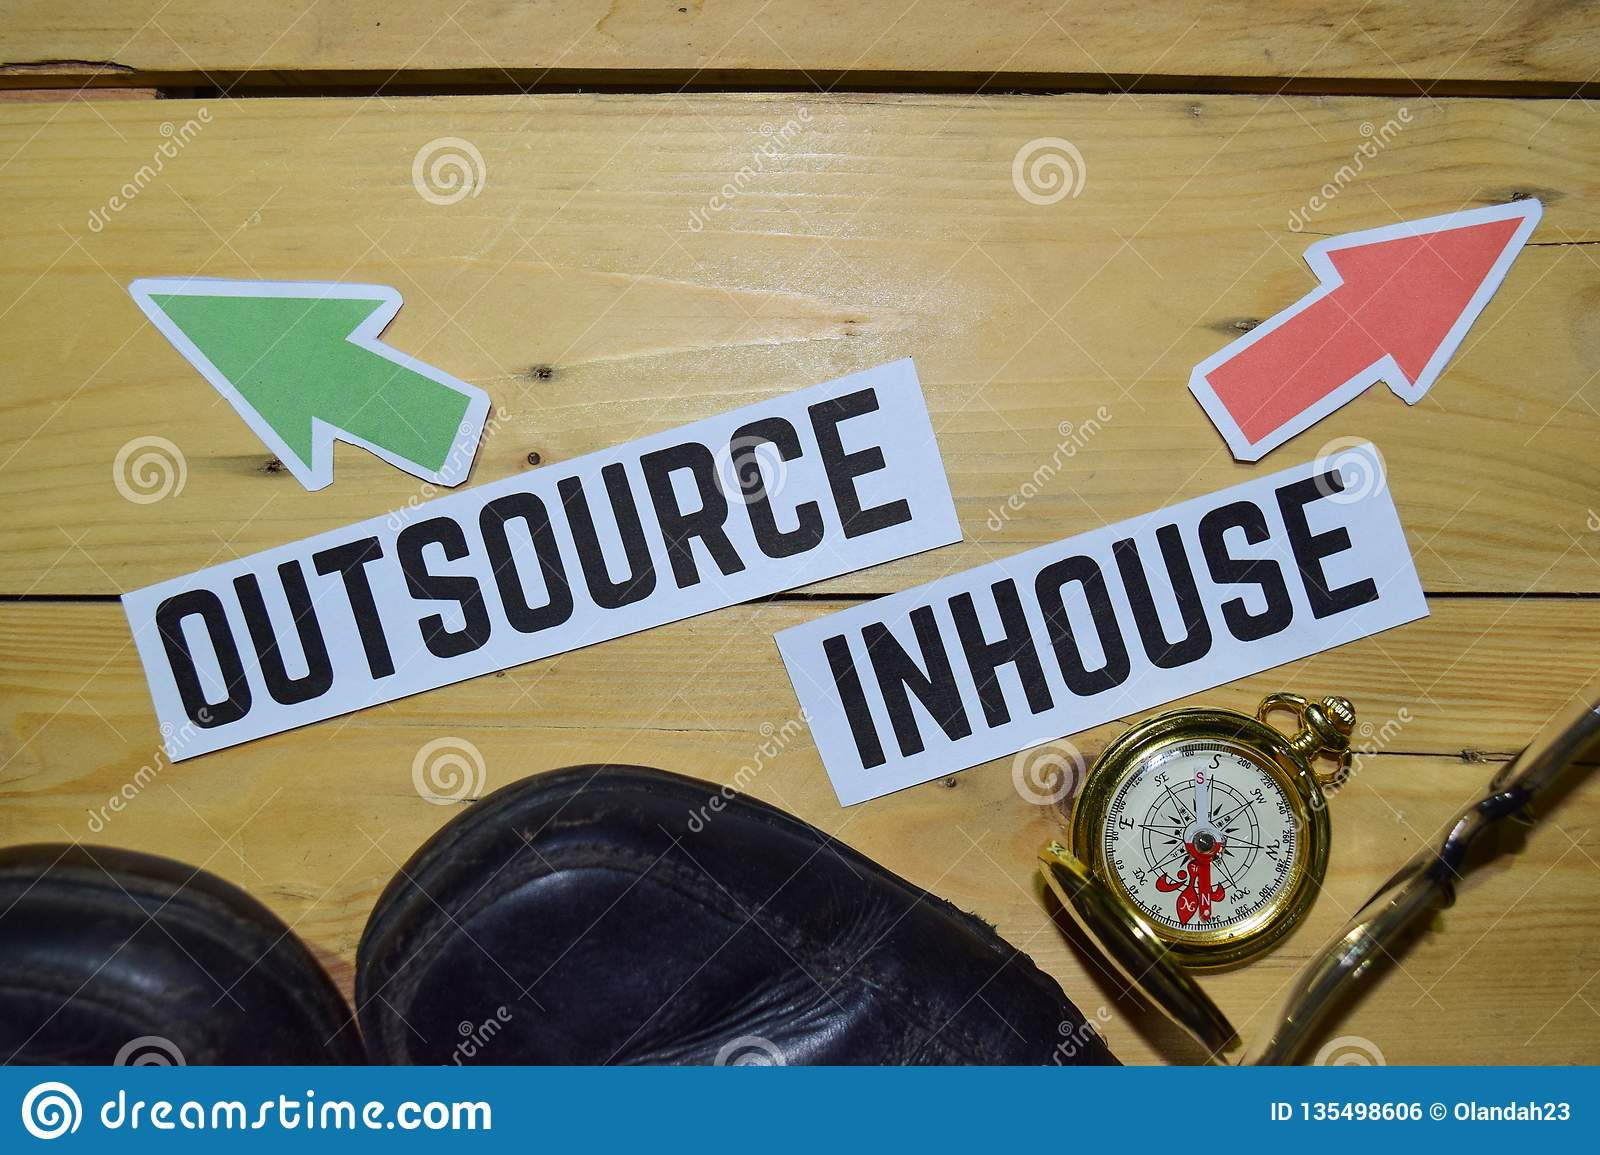 Outsource or Inhouse opposite direction signs with boots,eyeglasses and compass on wooden